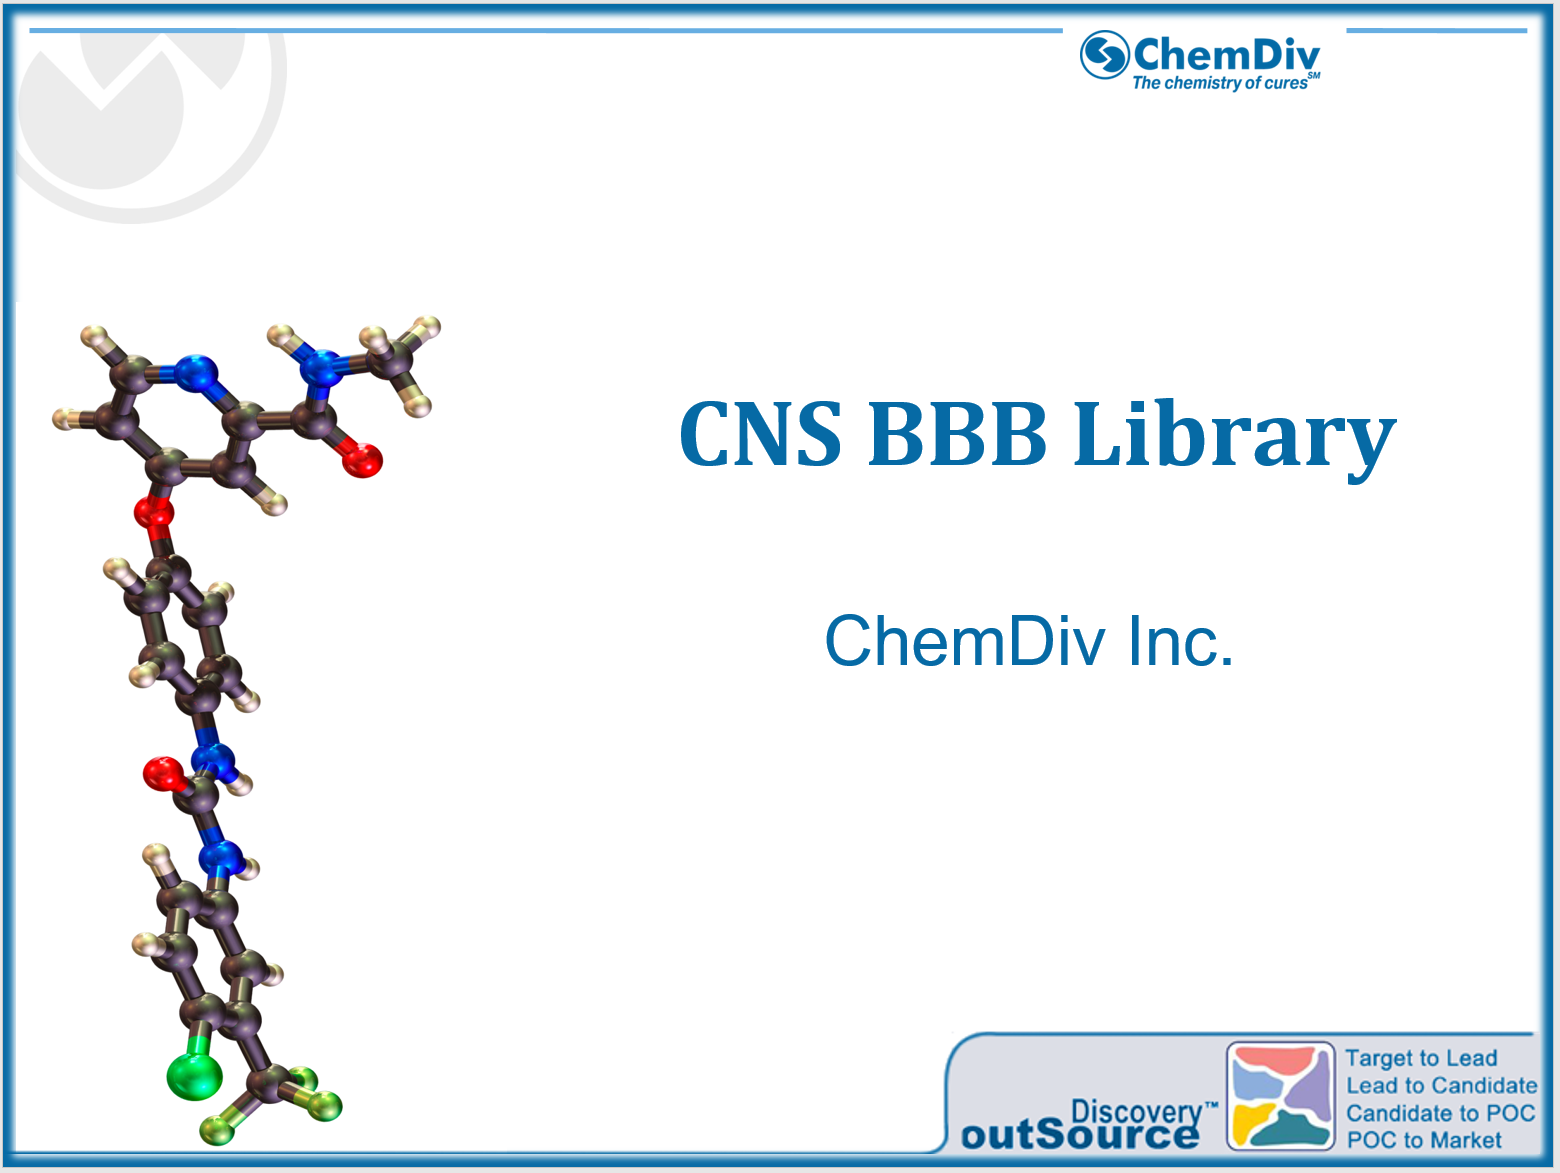 cns bbb library